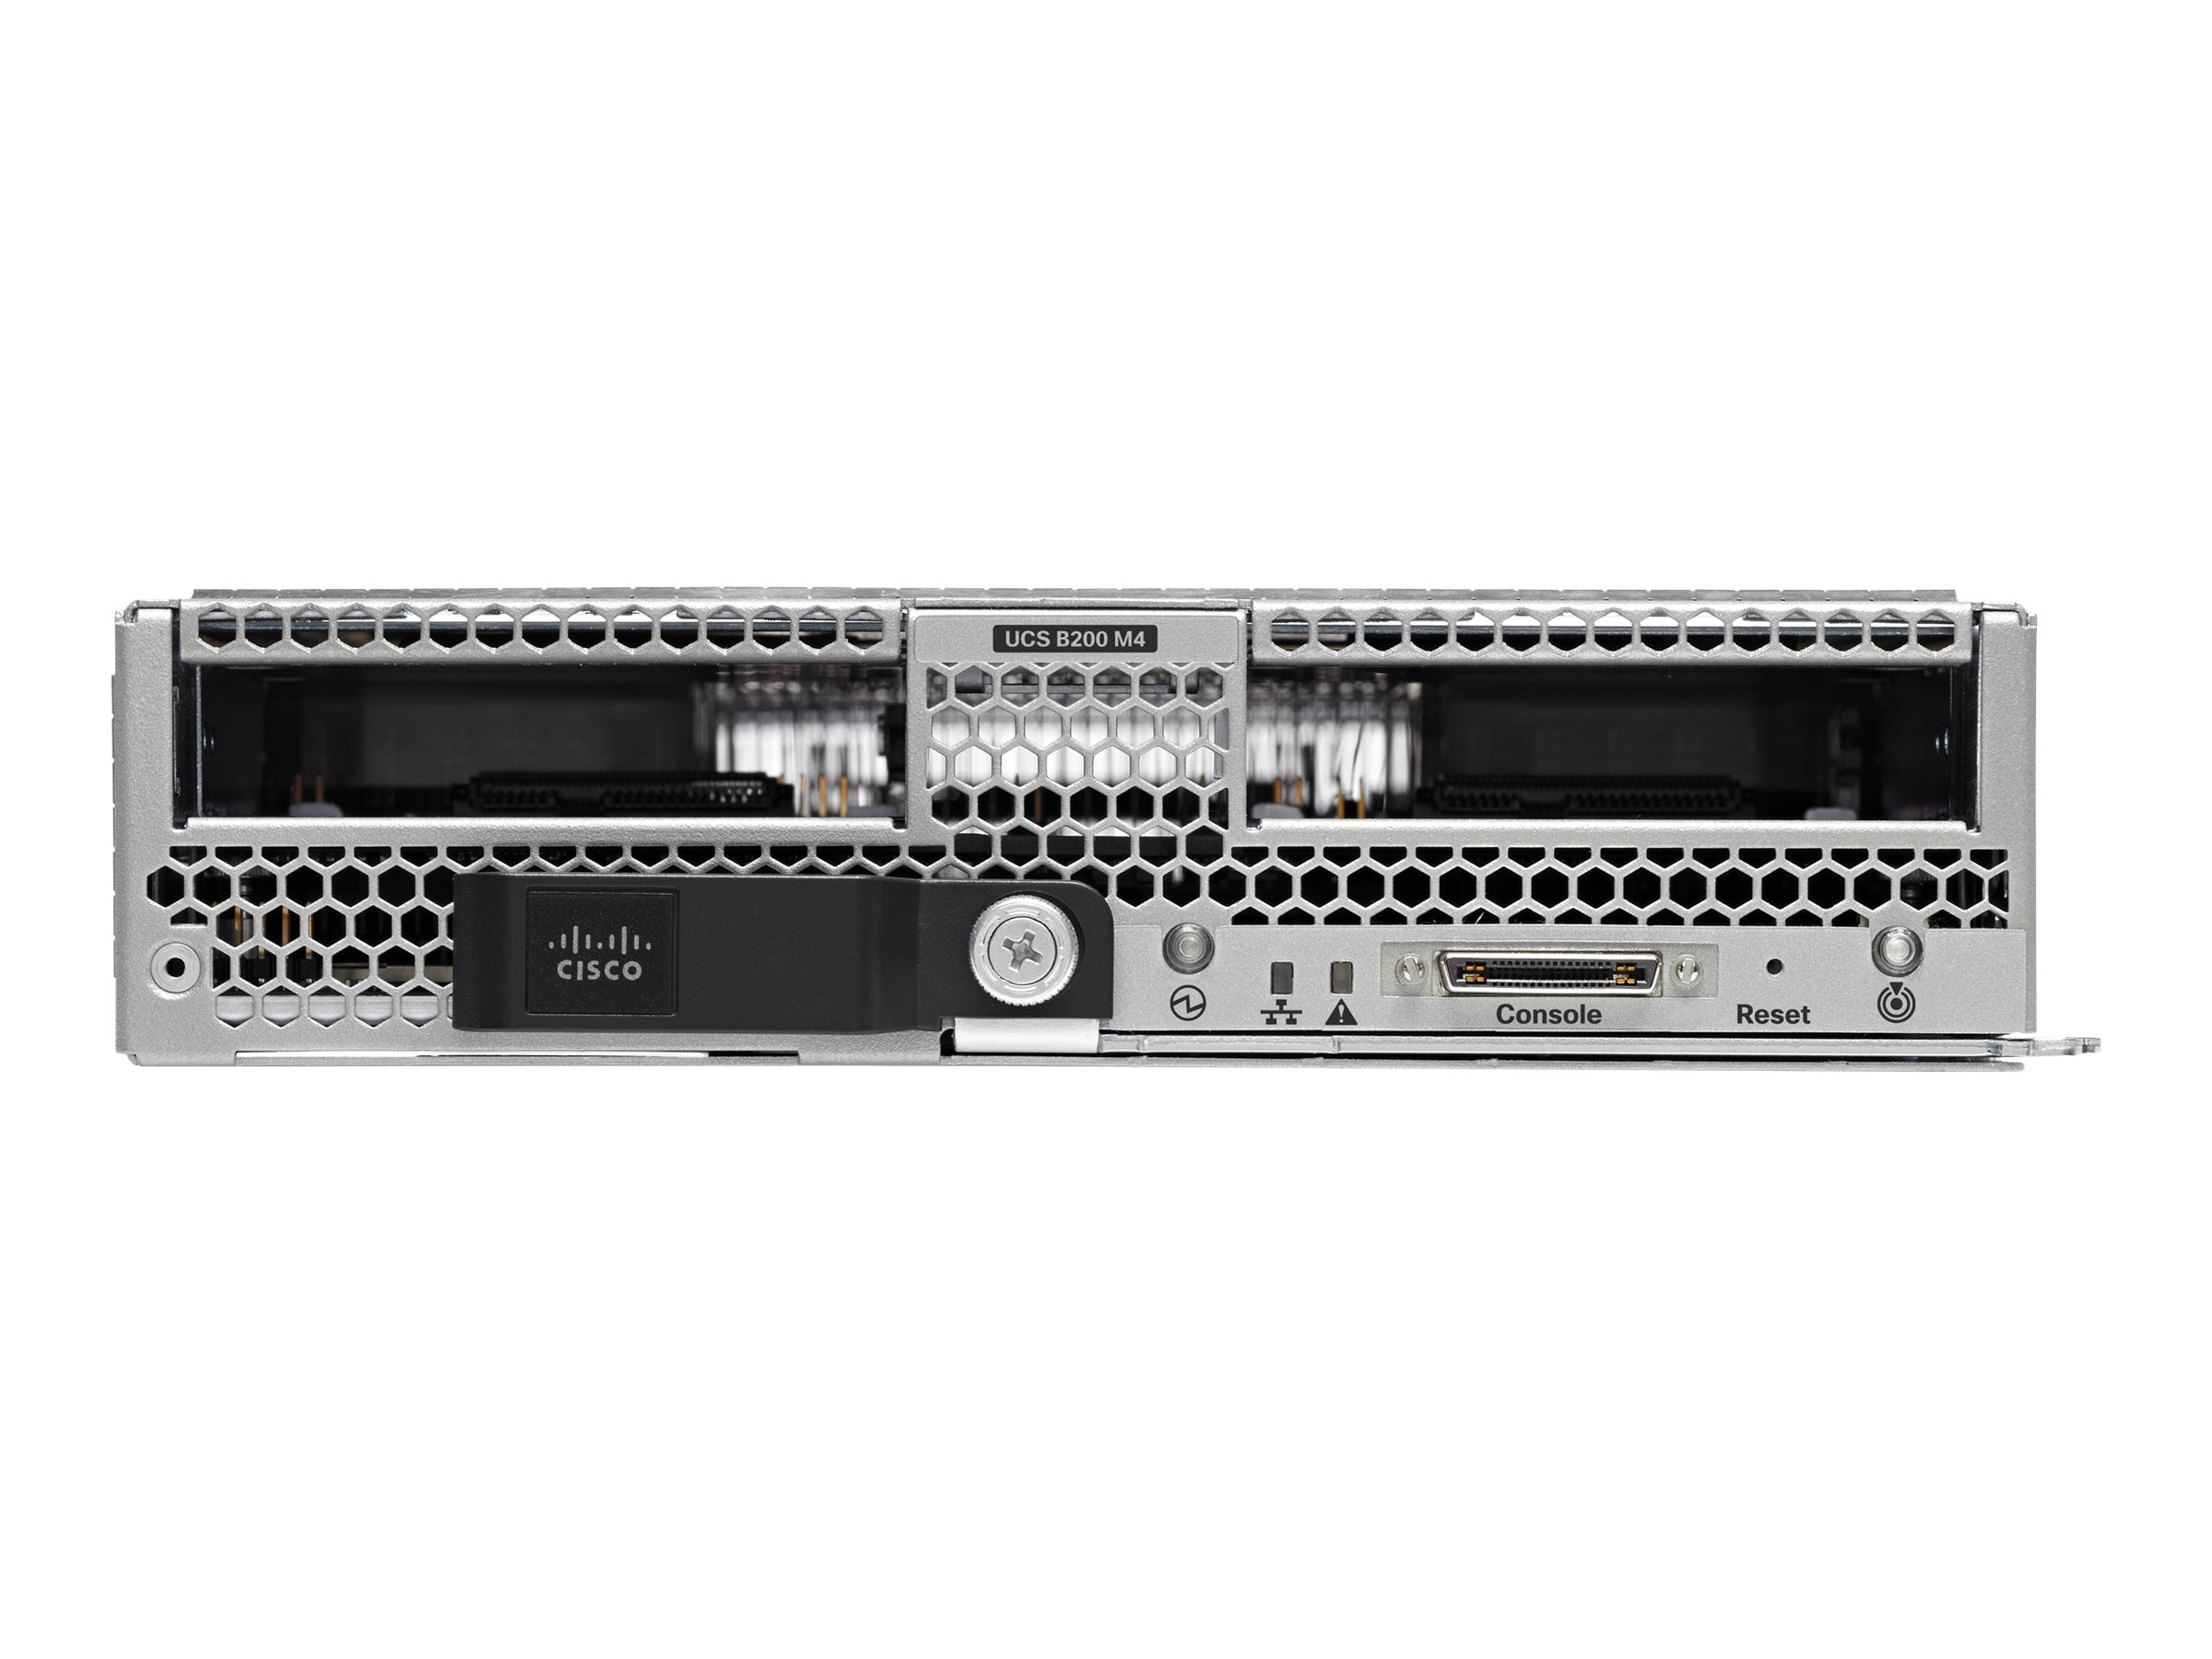 Cisco B200 M4 STD1 Blade (2x)Xeon E5-2630 v3, UCS-SP-B200M4-S1T, 31448991, Servers - Blade